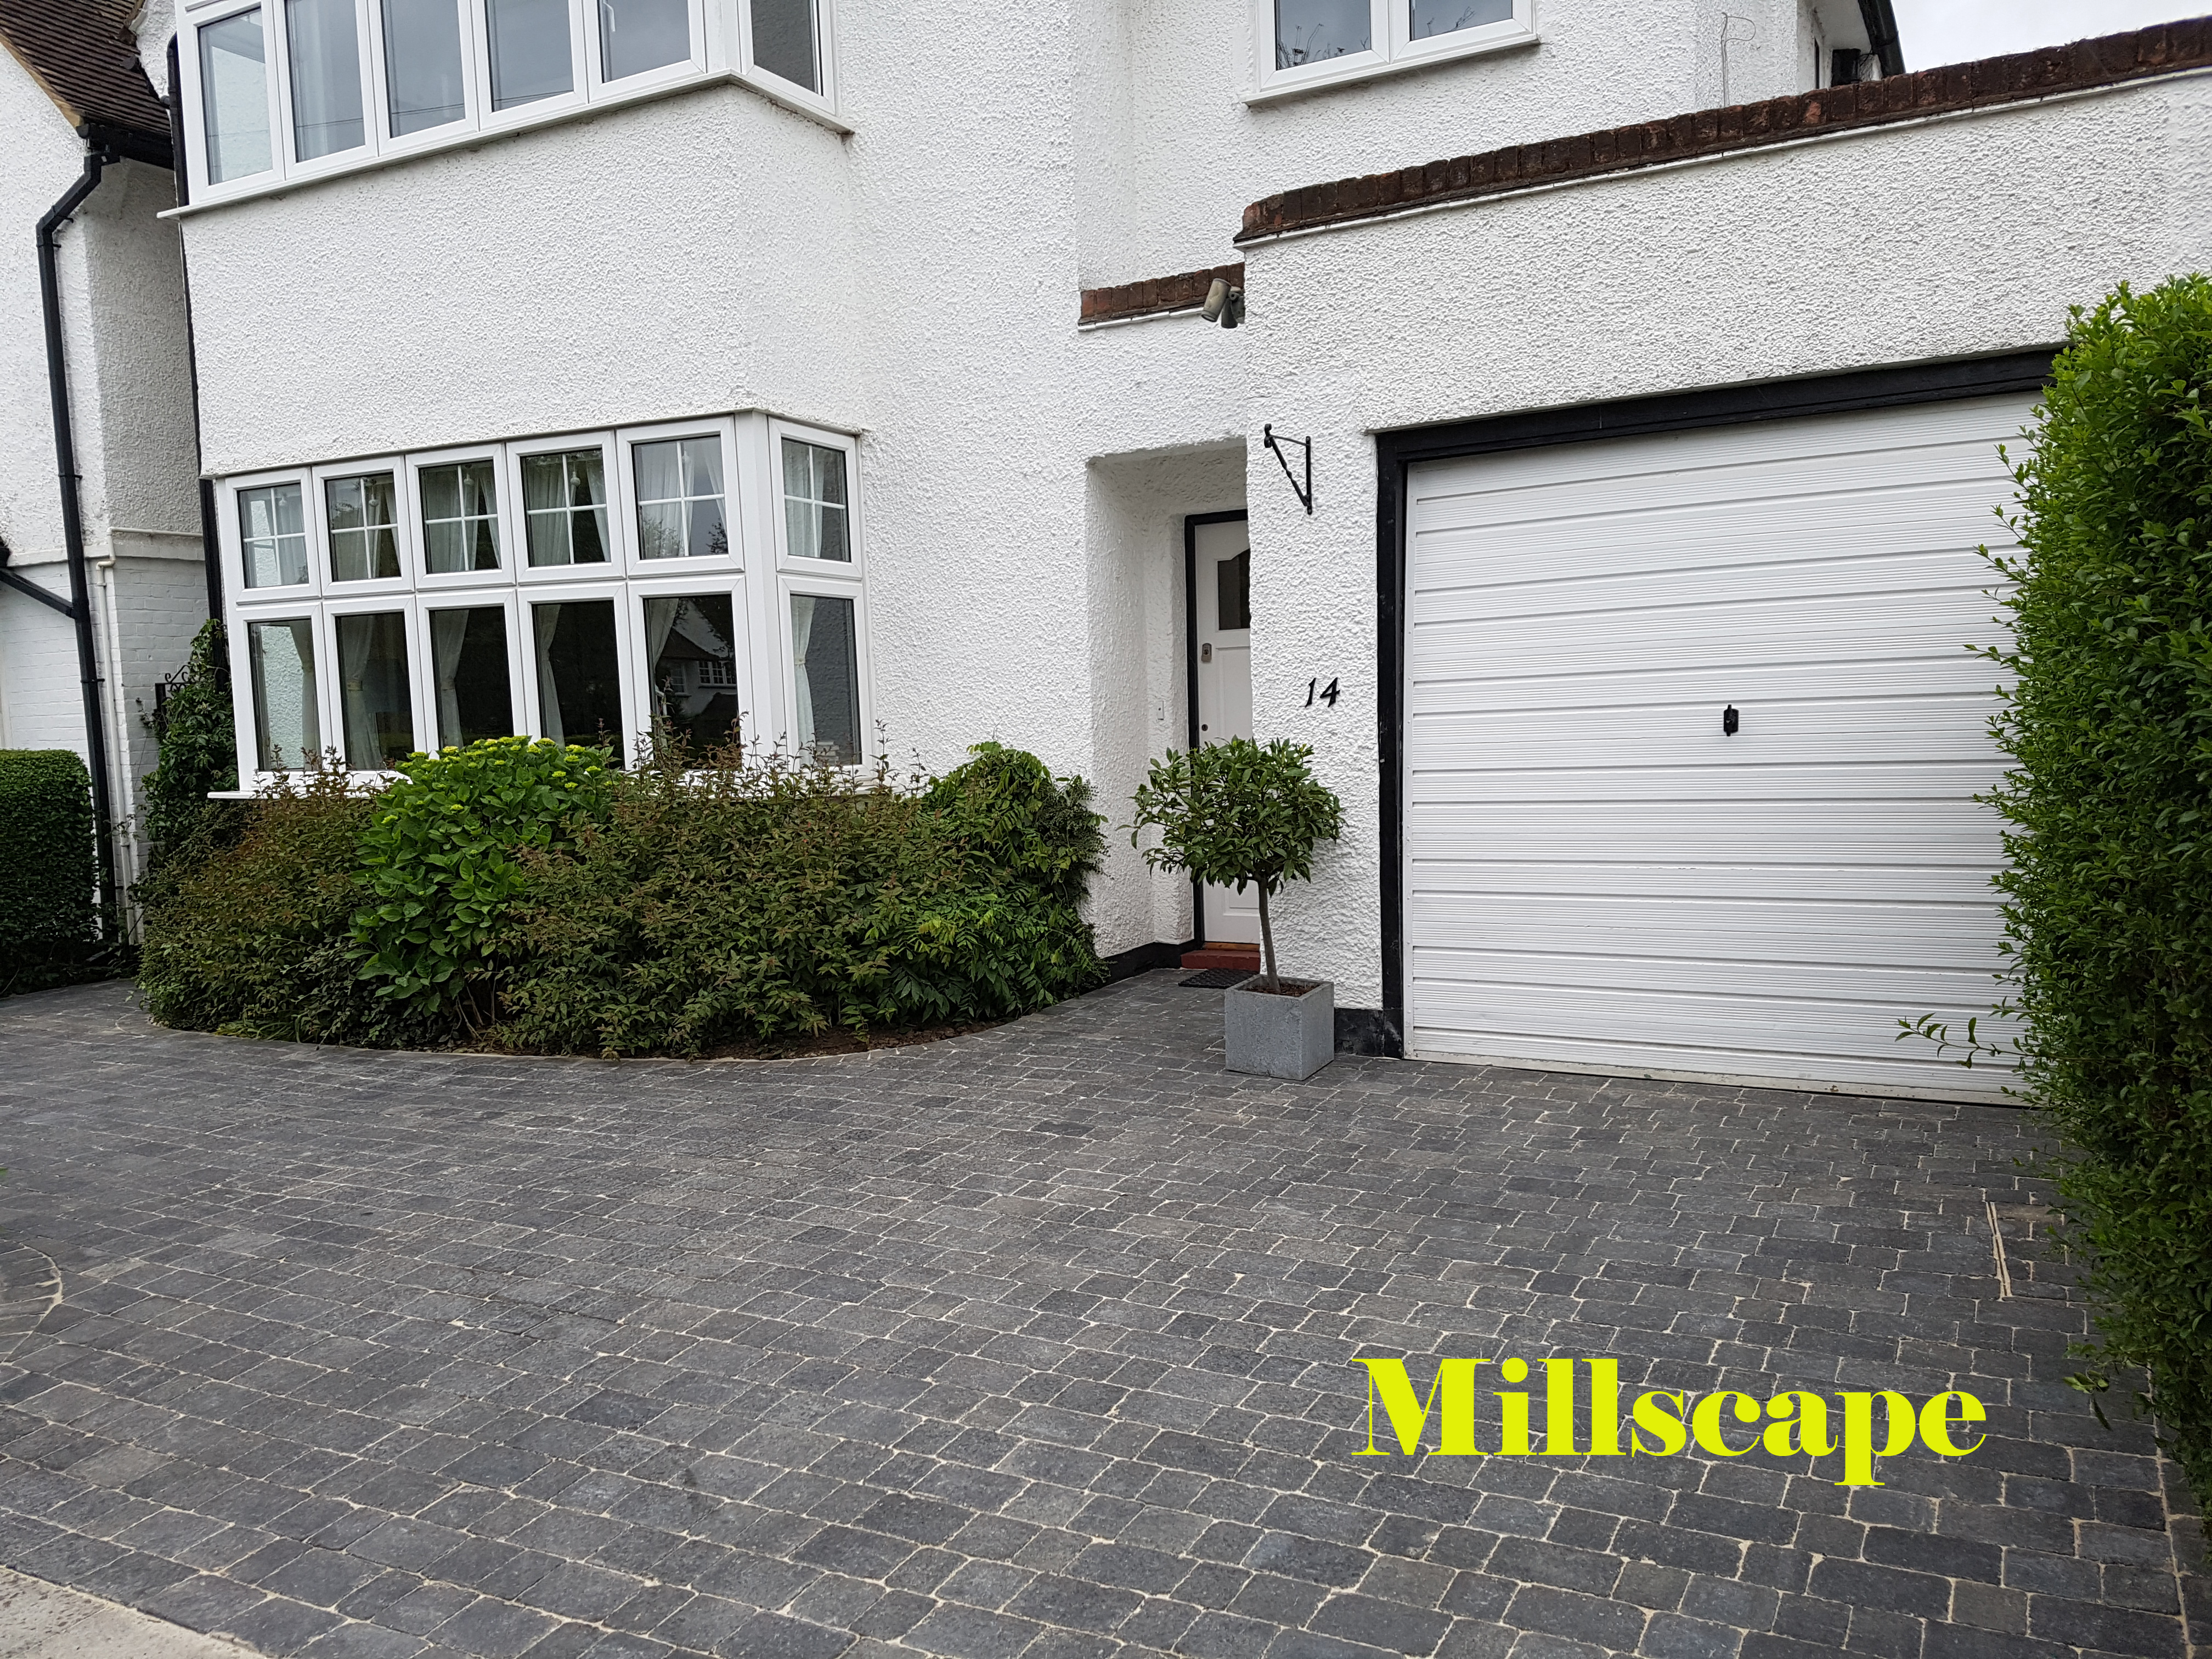 Driveway Mill hill Landscaping